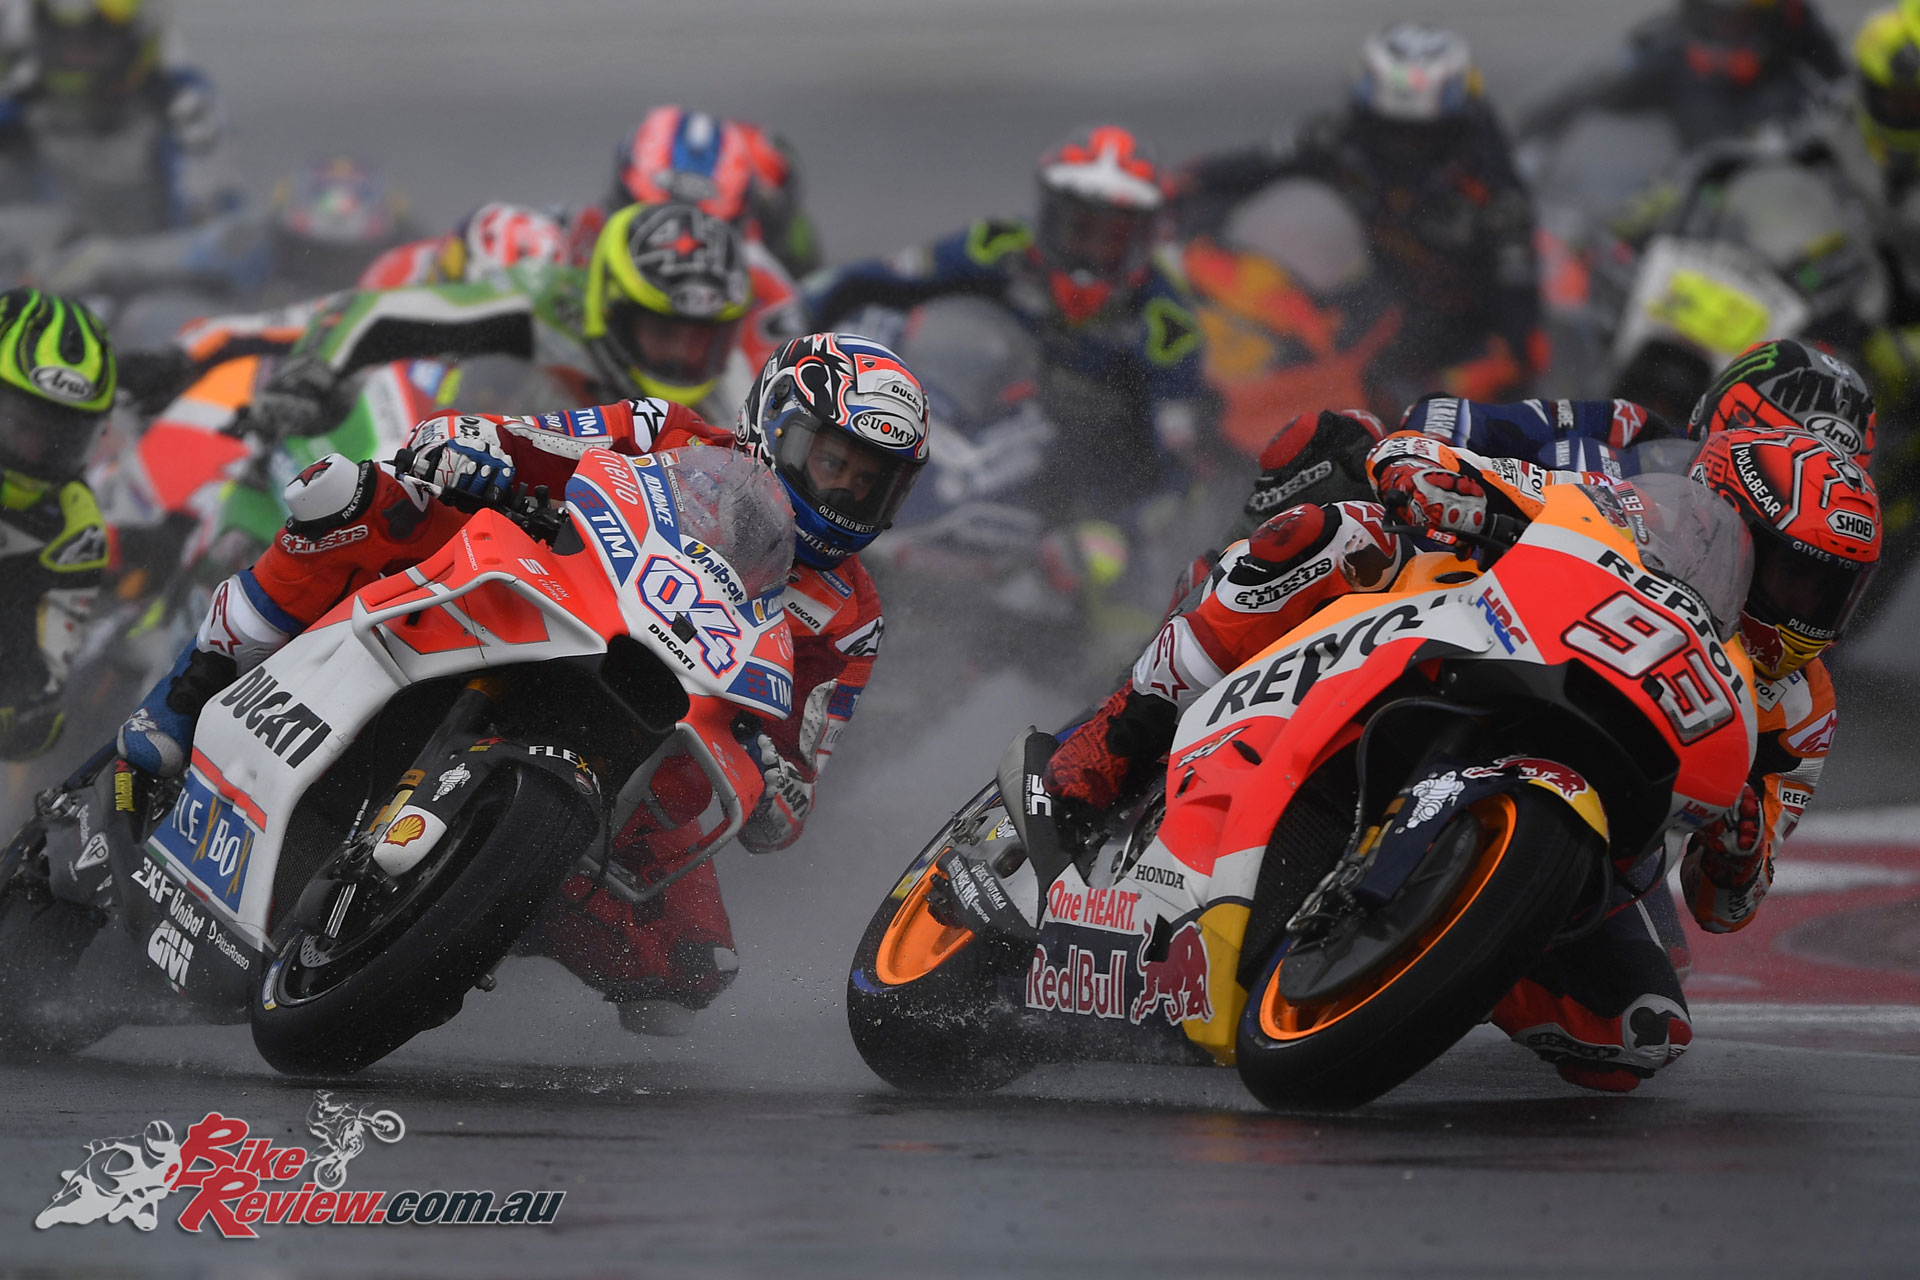 Marquez in the lead in wet conditions